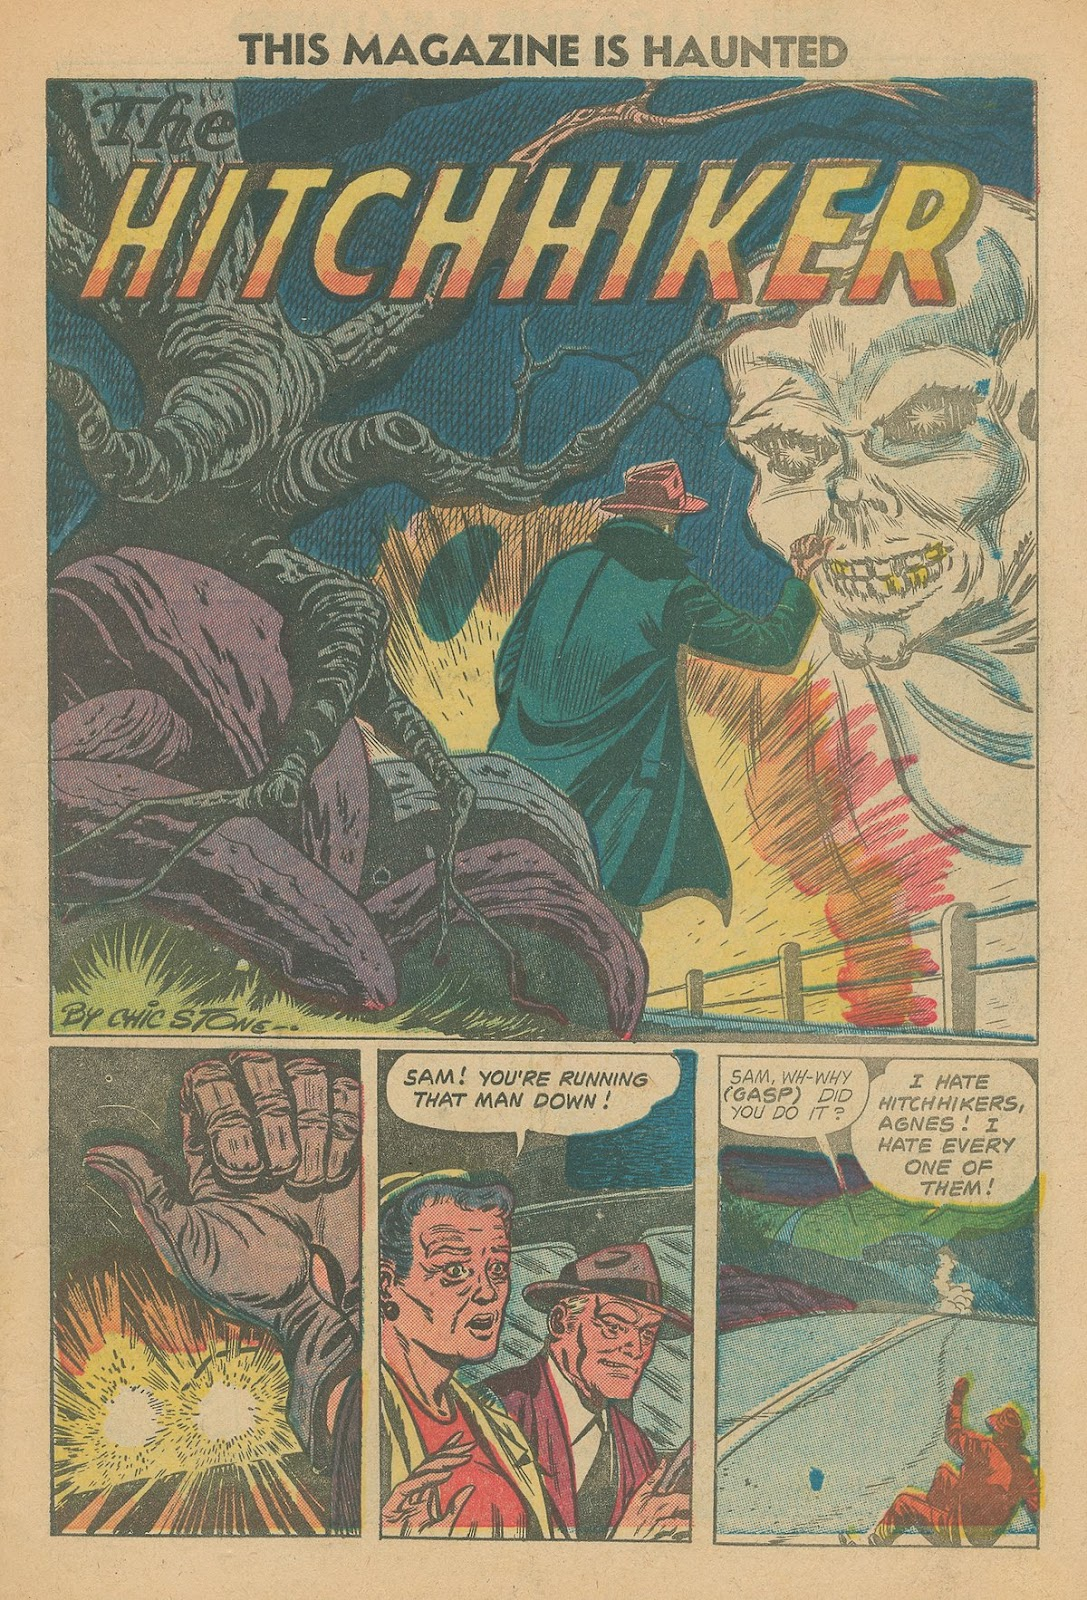 Read online This Magazine Is Haunted comic -  Issue #21 - 3